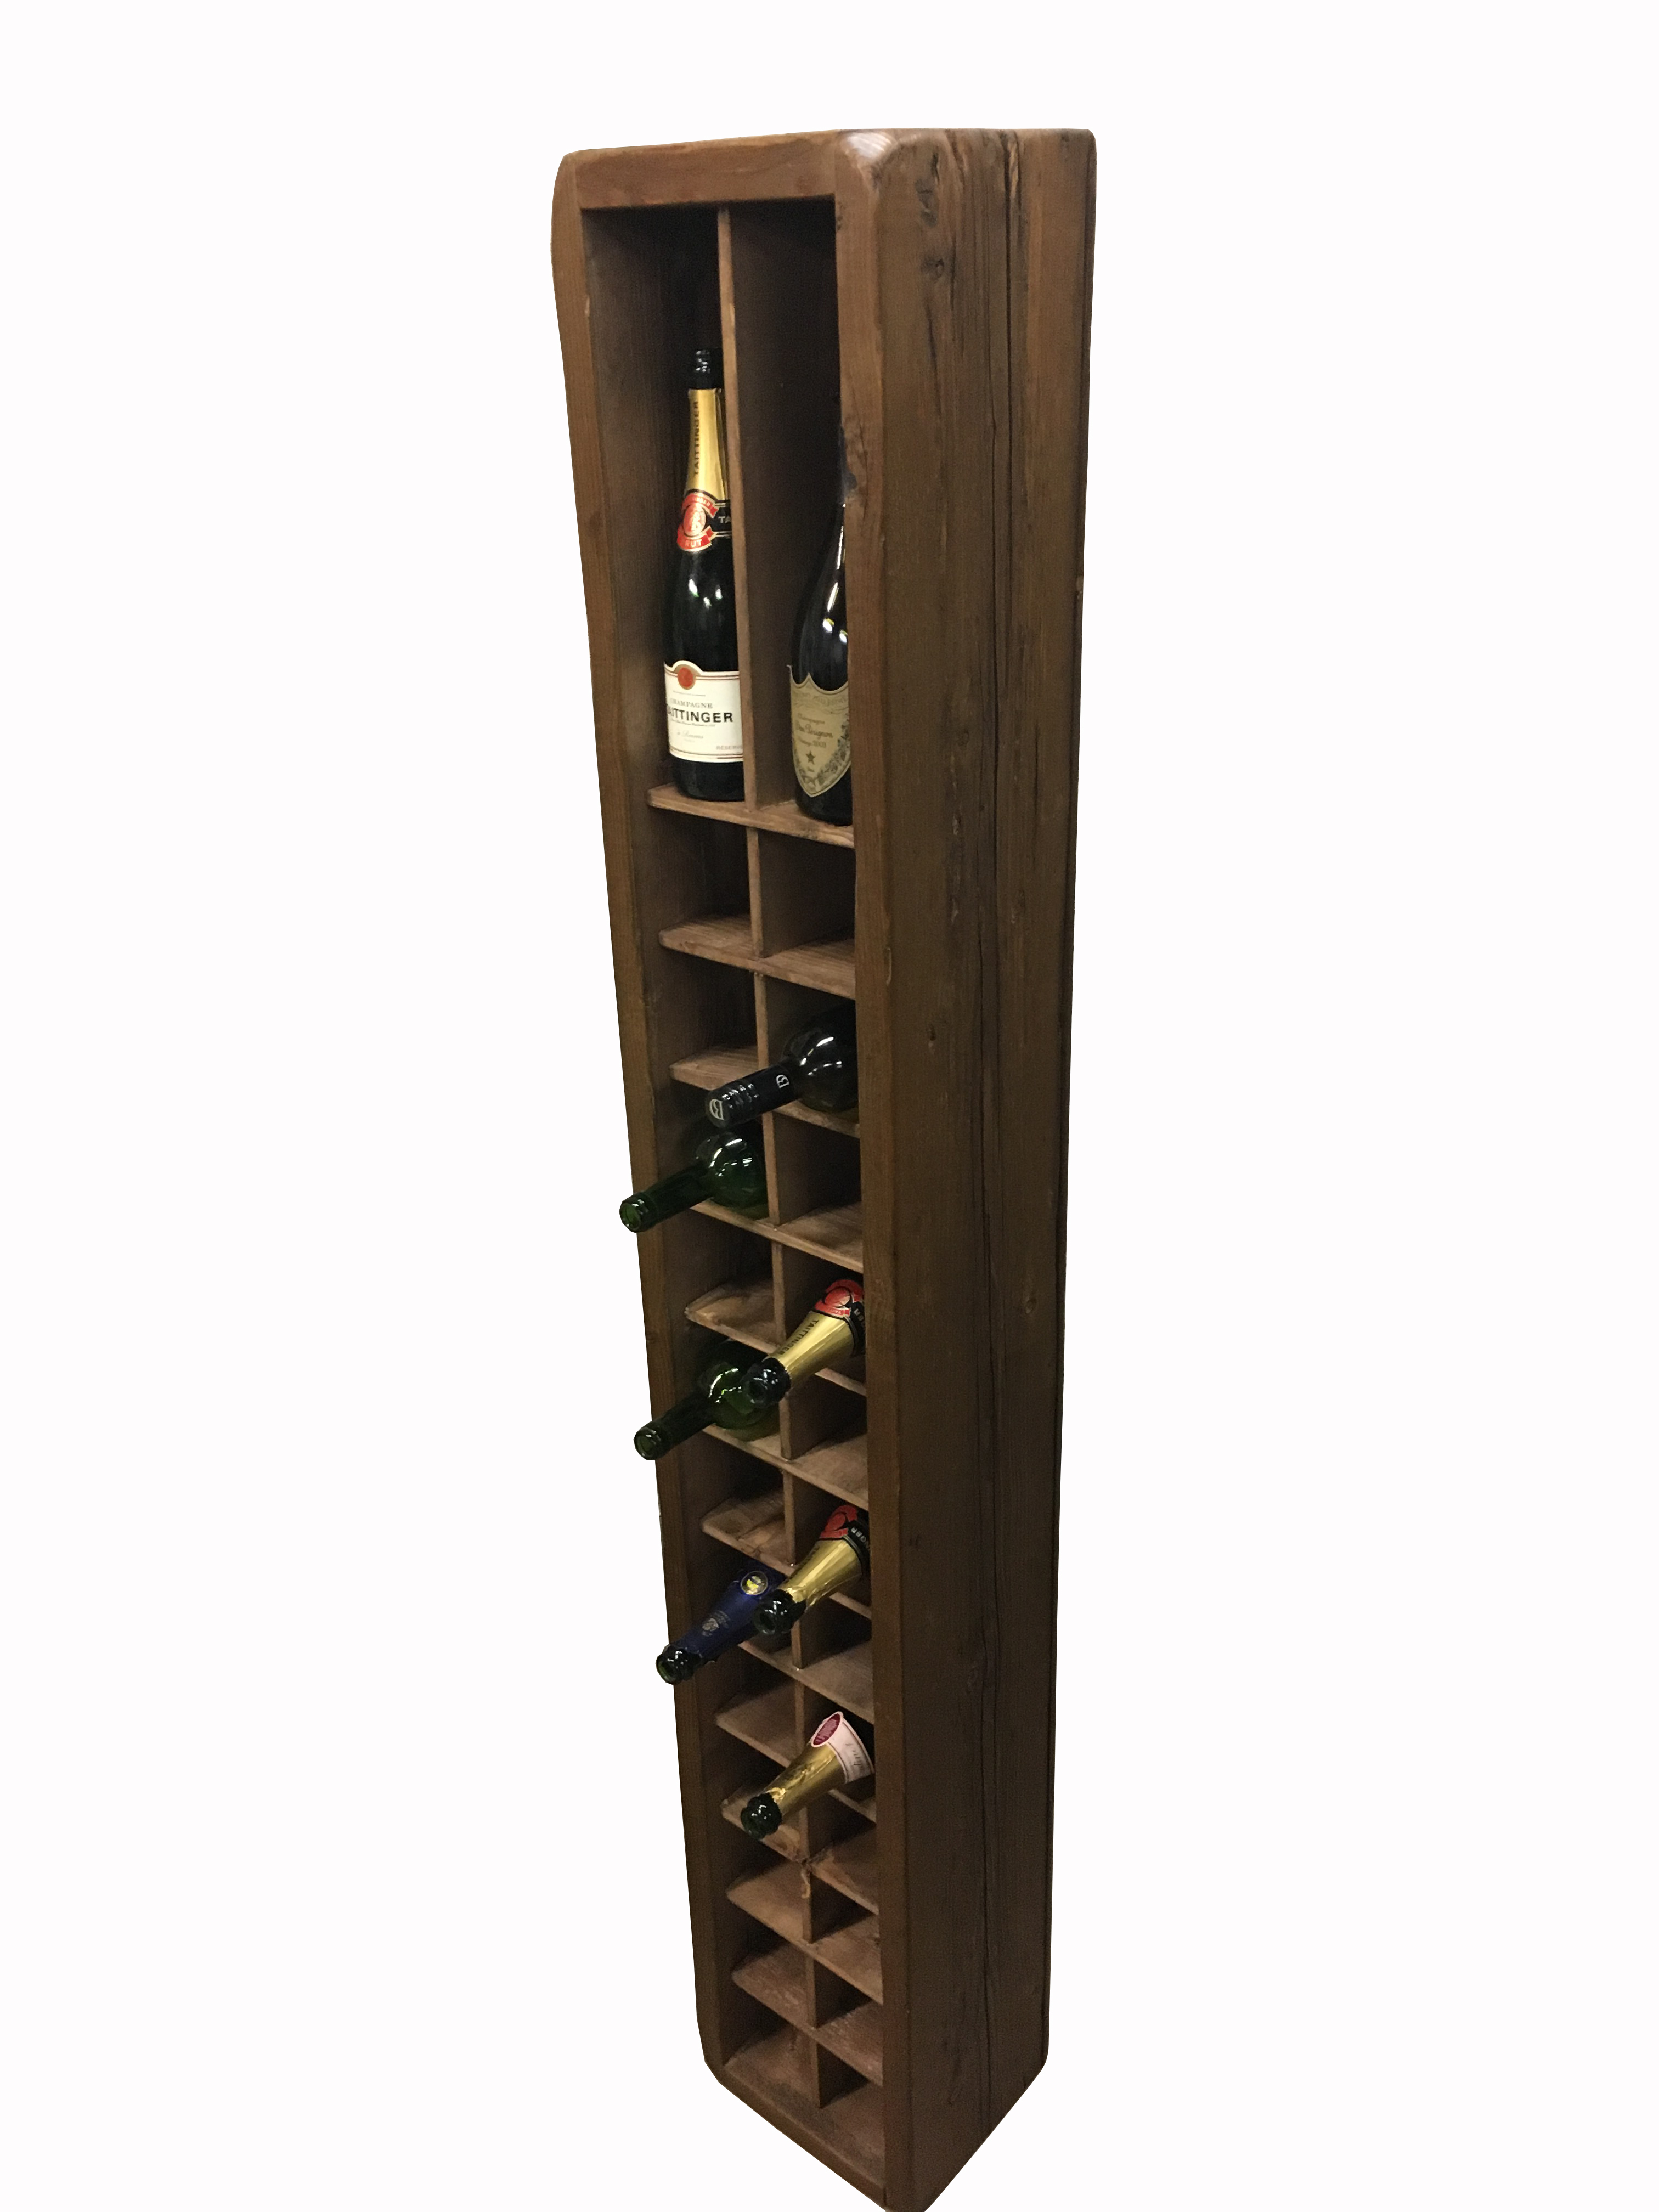 Standing Metal Wine Racks New Celtic Manor Wine Rack Wood Champagne Holder Tall